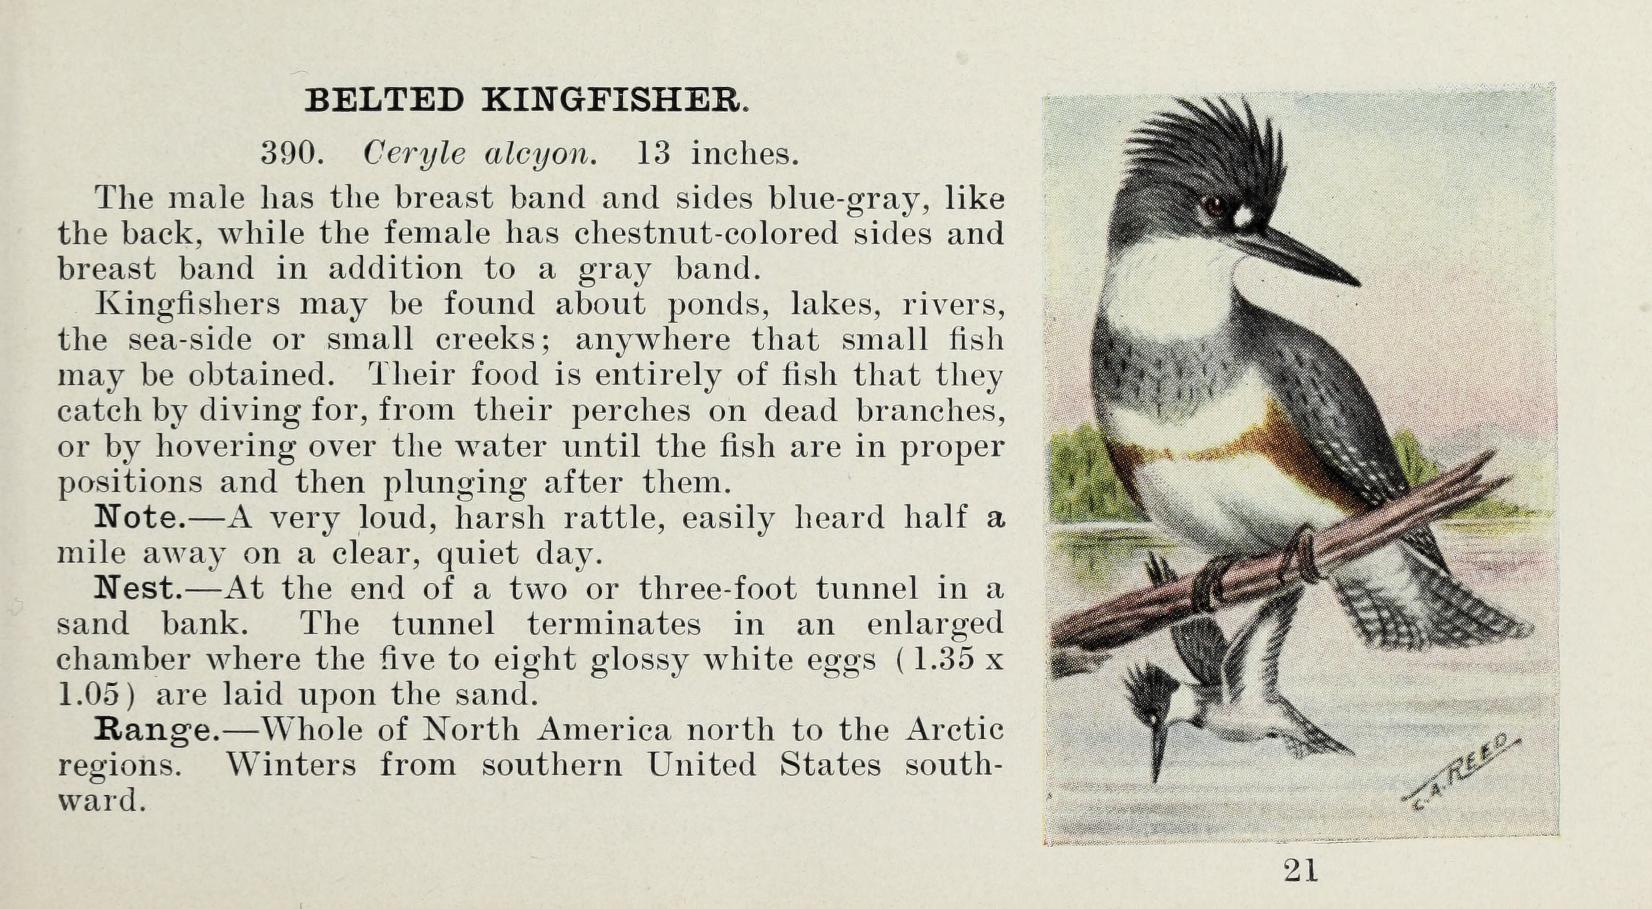 color illustration of a female belted kingfisher perched on a branch, with a male flying over water in the background